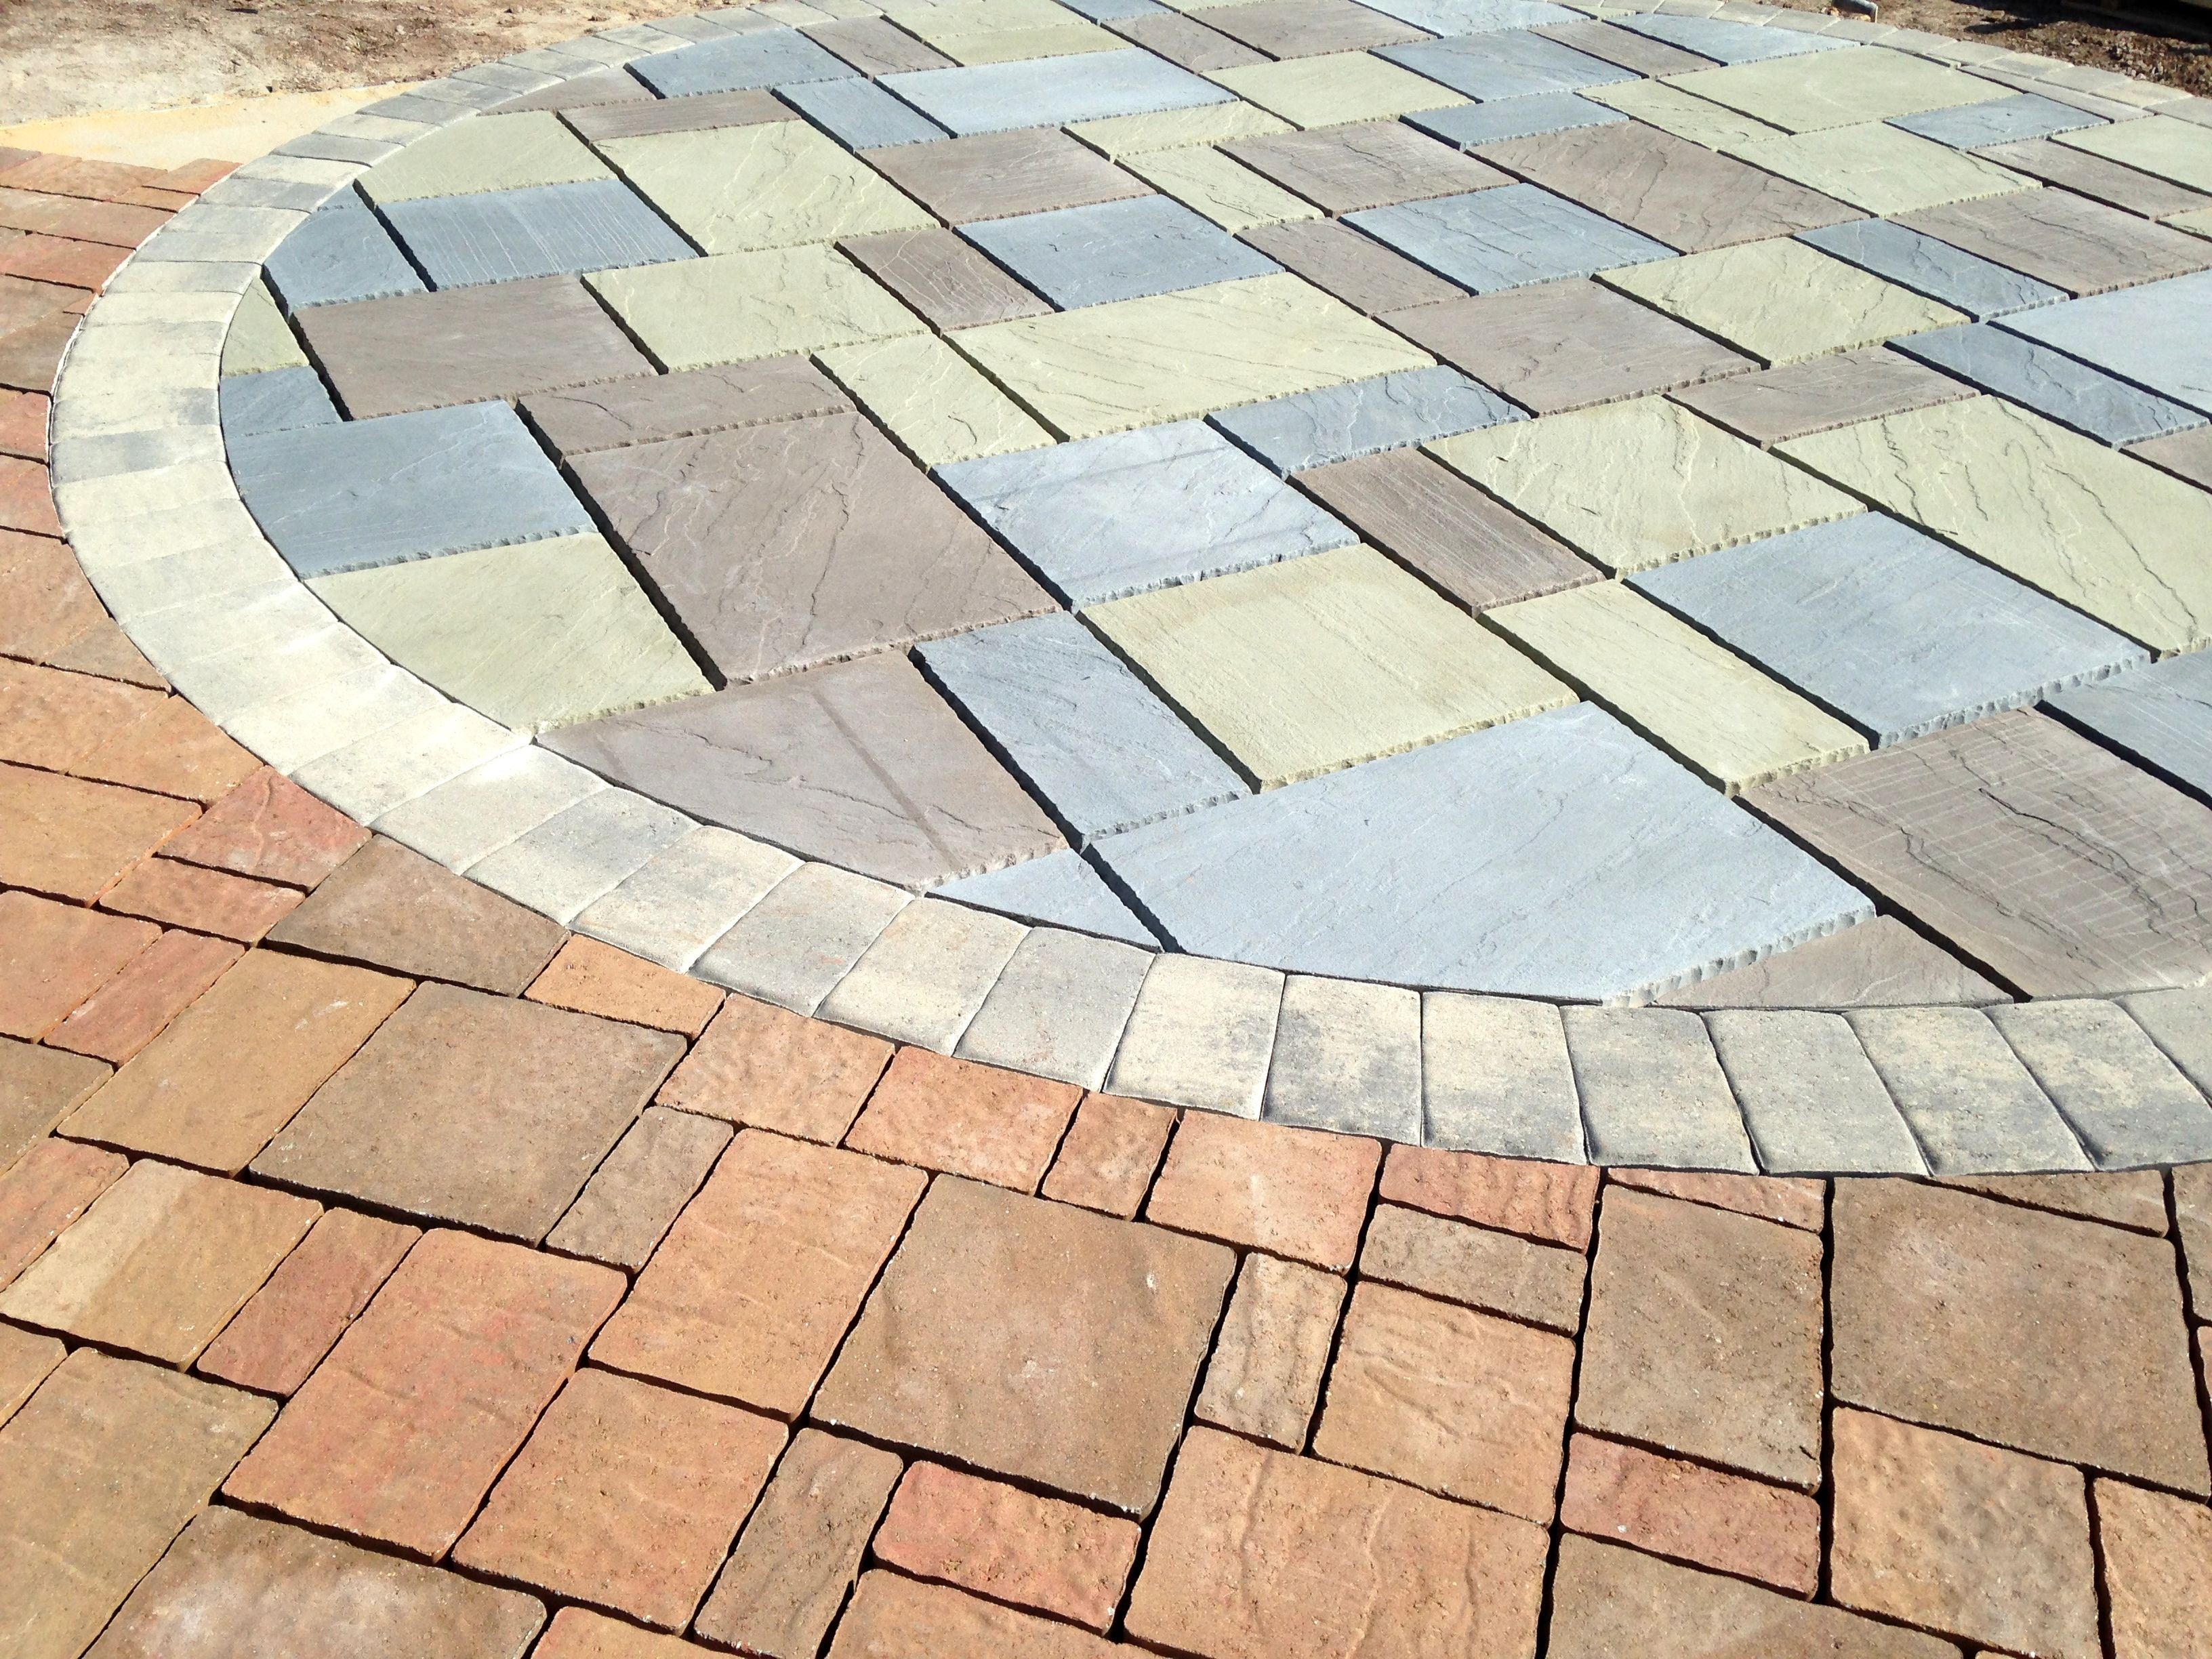 Circular Patio With Transition Area, Hardscaping By Premier Patios U0026 Walks # Patio #hardscape